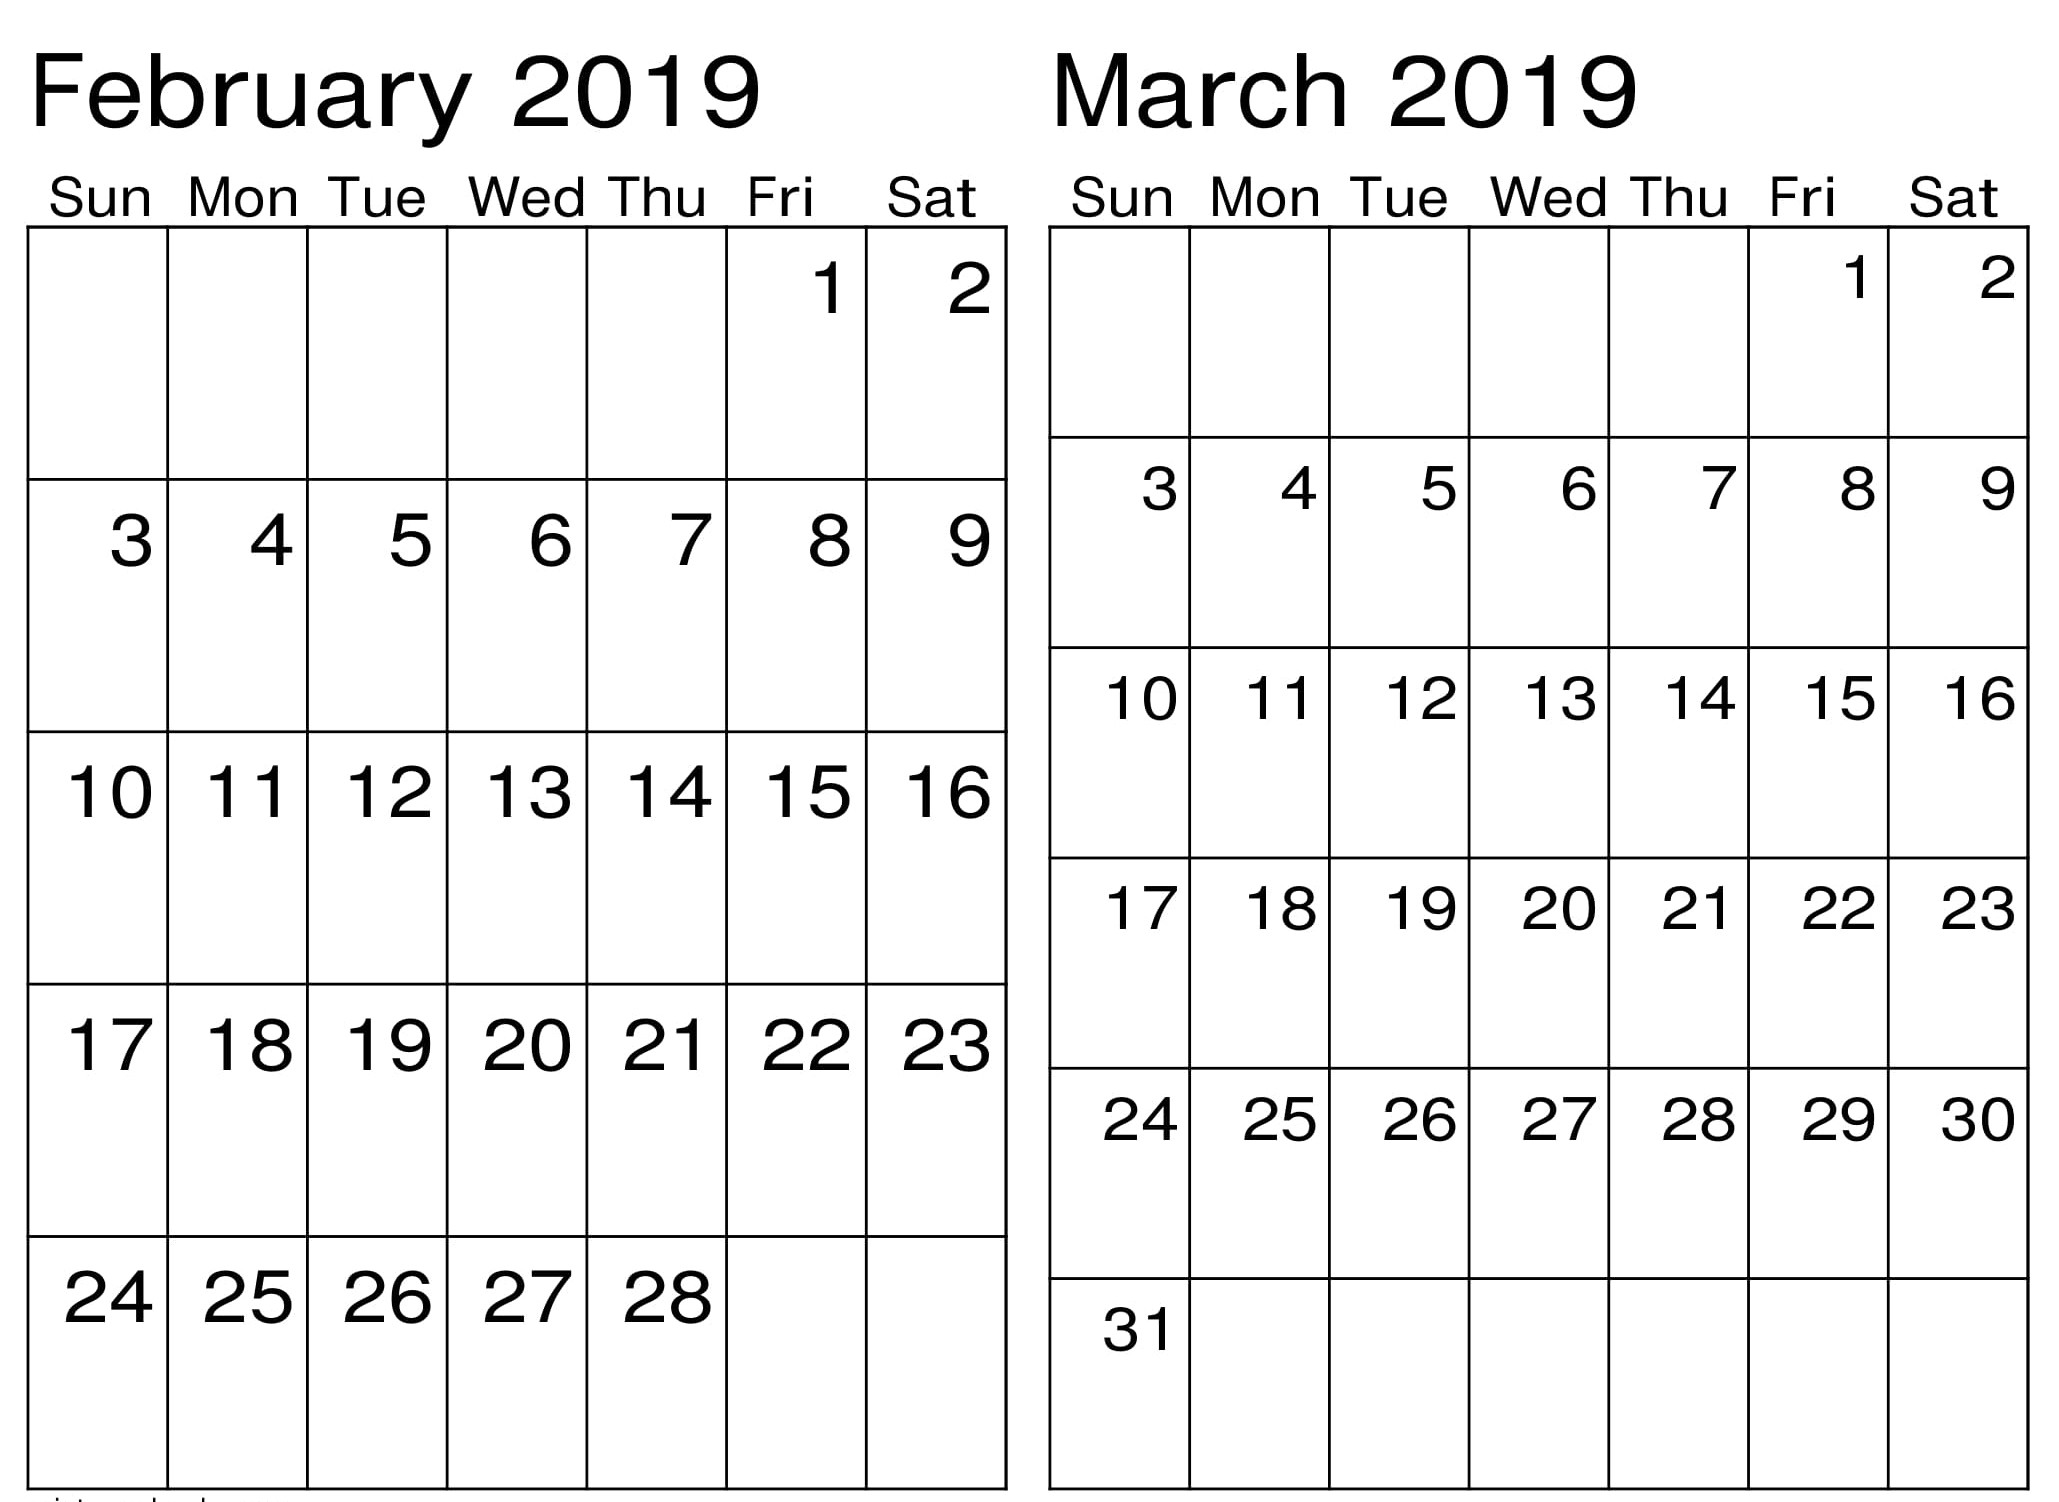 March Calendar 2019 Más Recientemente Liberado February March Calendar 2019 – Free Calendar Templates & Worksheets Of March Calendar 2019 Más Actual Odia Calendar 2019 with March Odishain